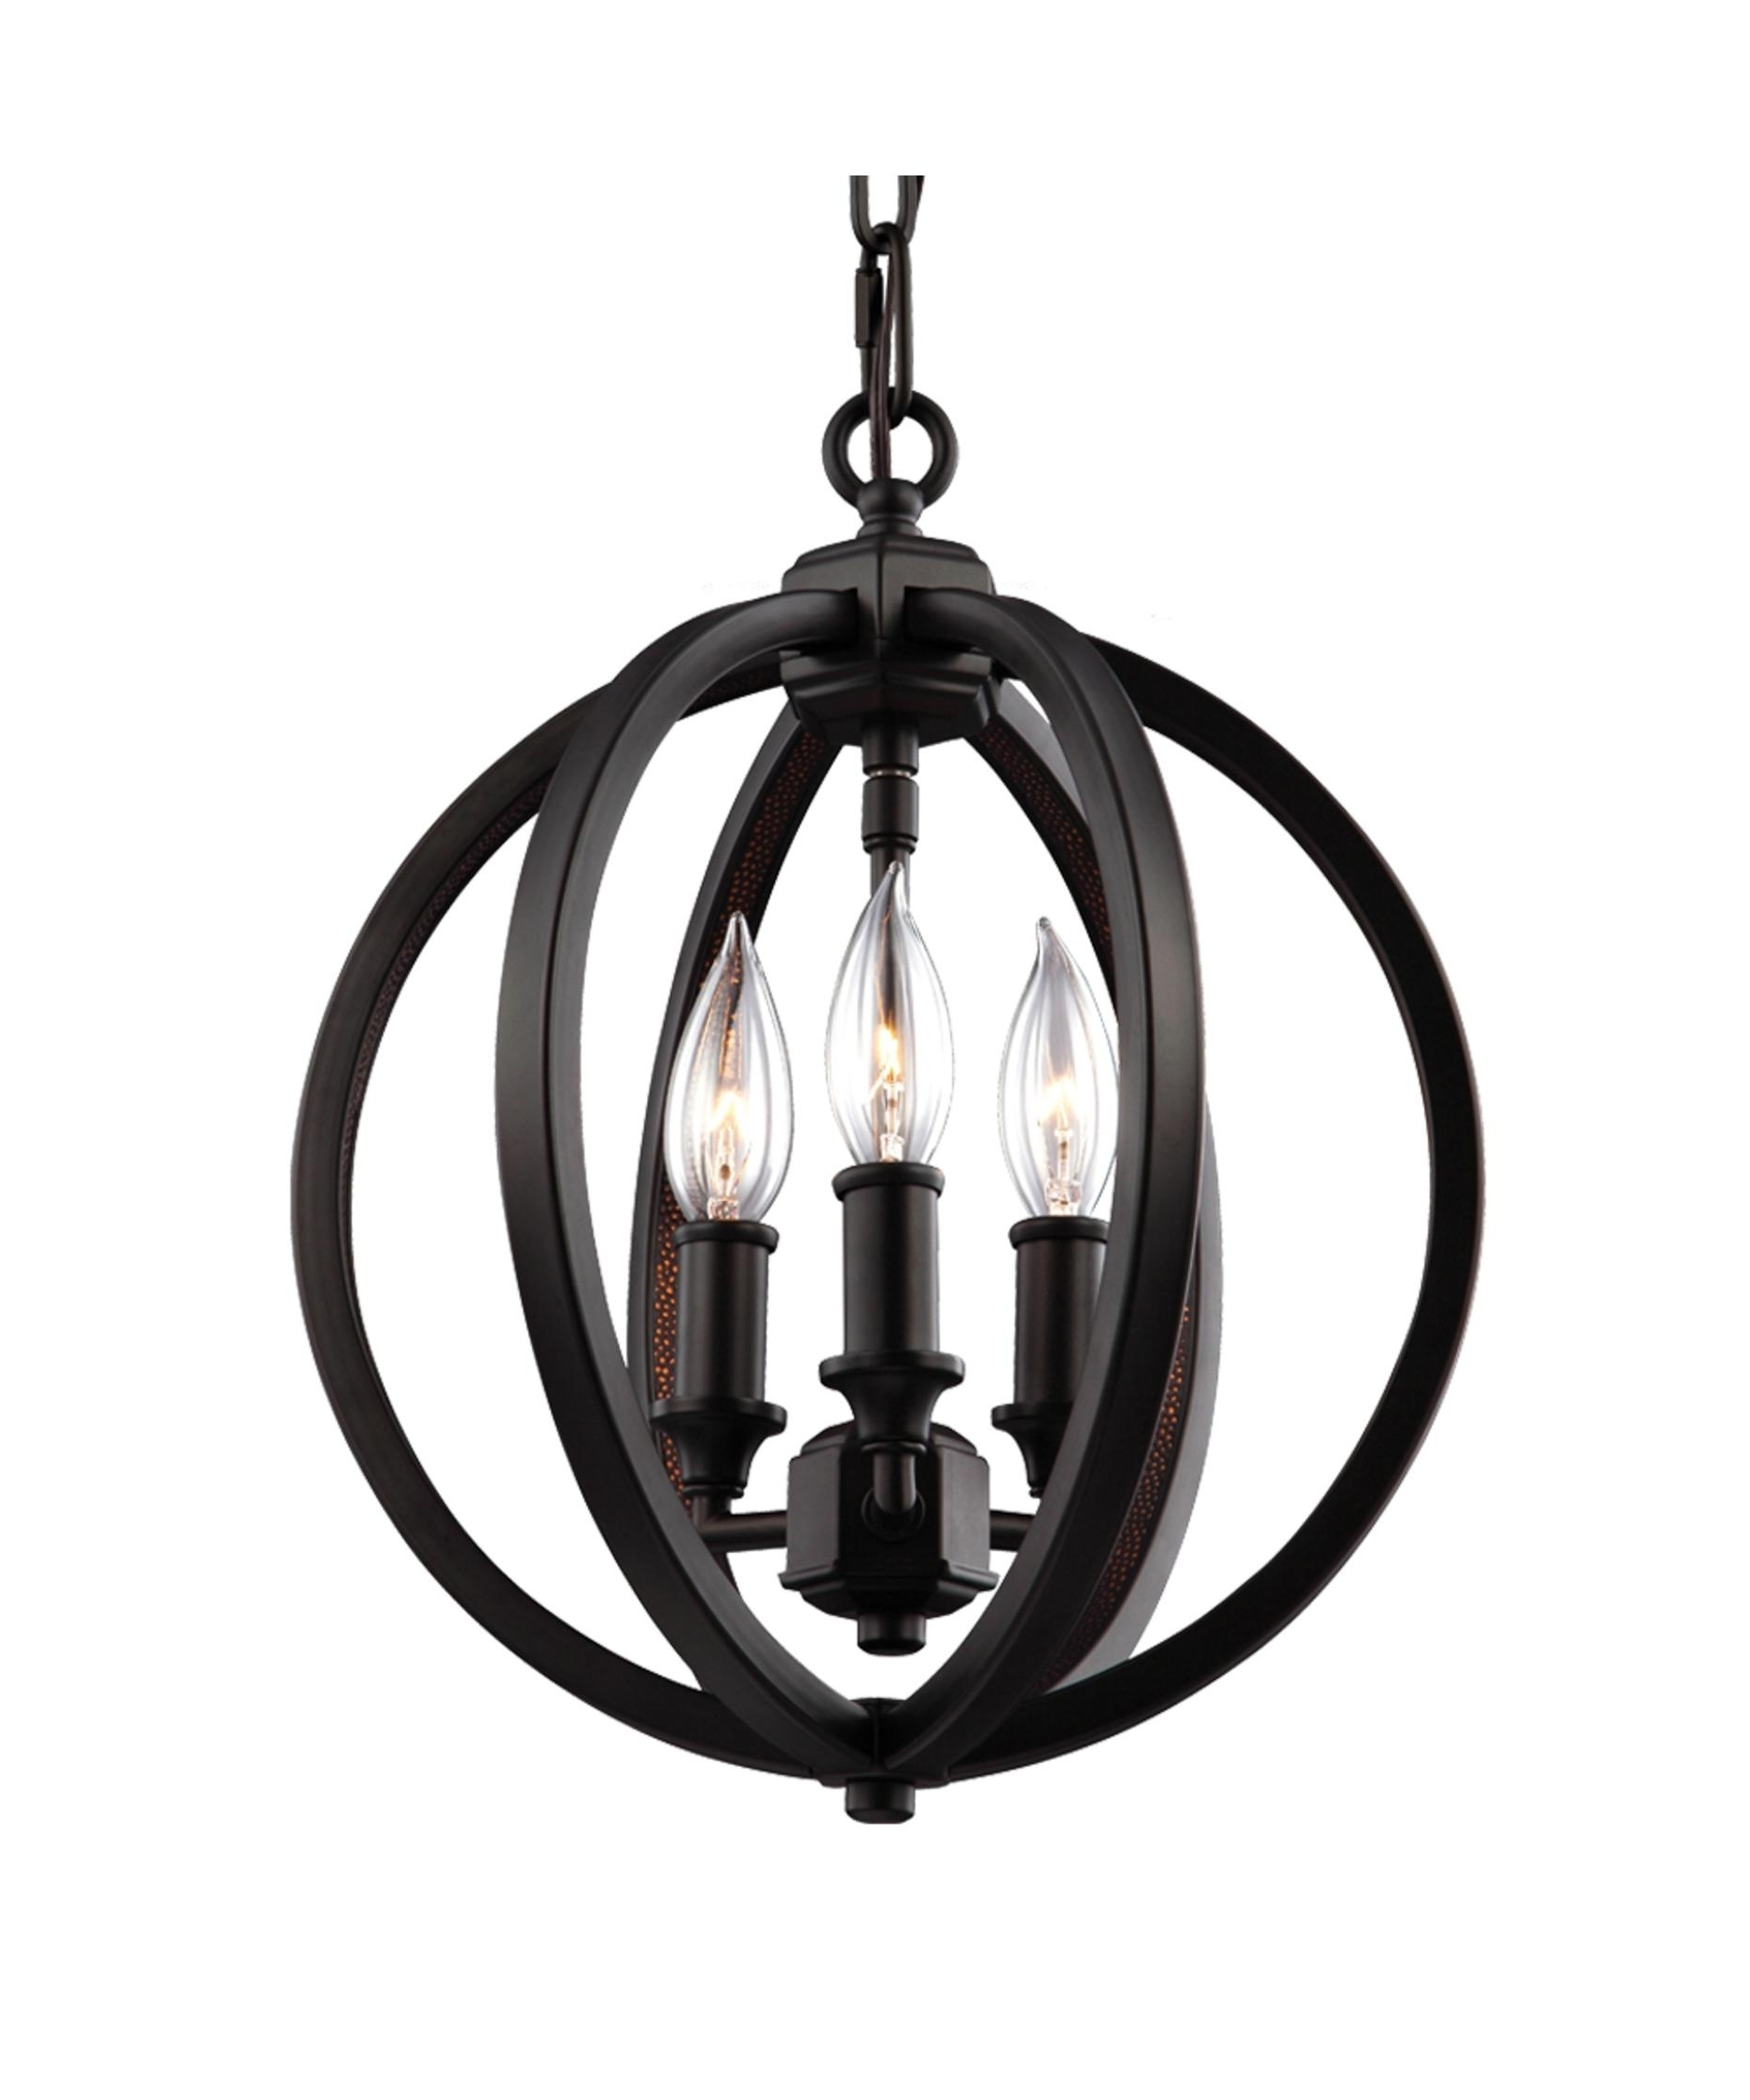 Murray Feiss F3059 3 Corinne 11 Inch Wide 3 Light Mini Chandelier Intended For Most Current Feiss Chandeliers (View 7 of 20)